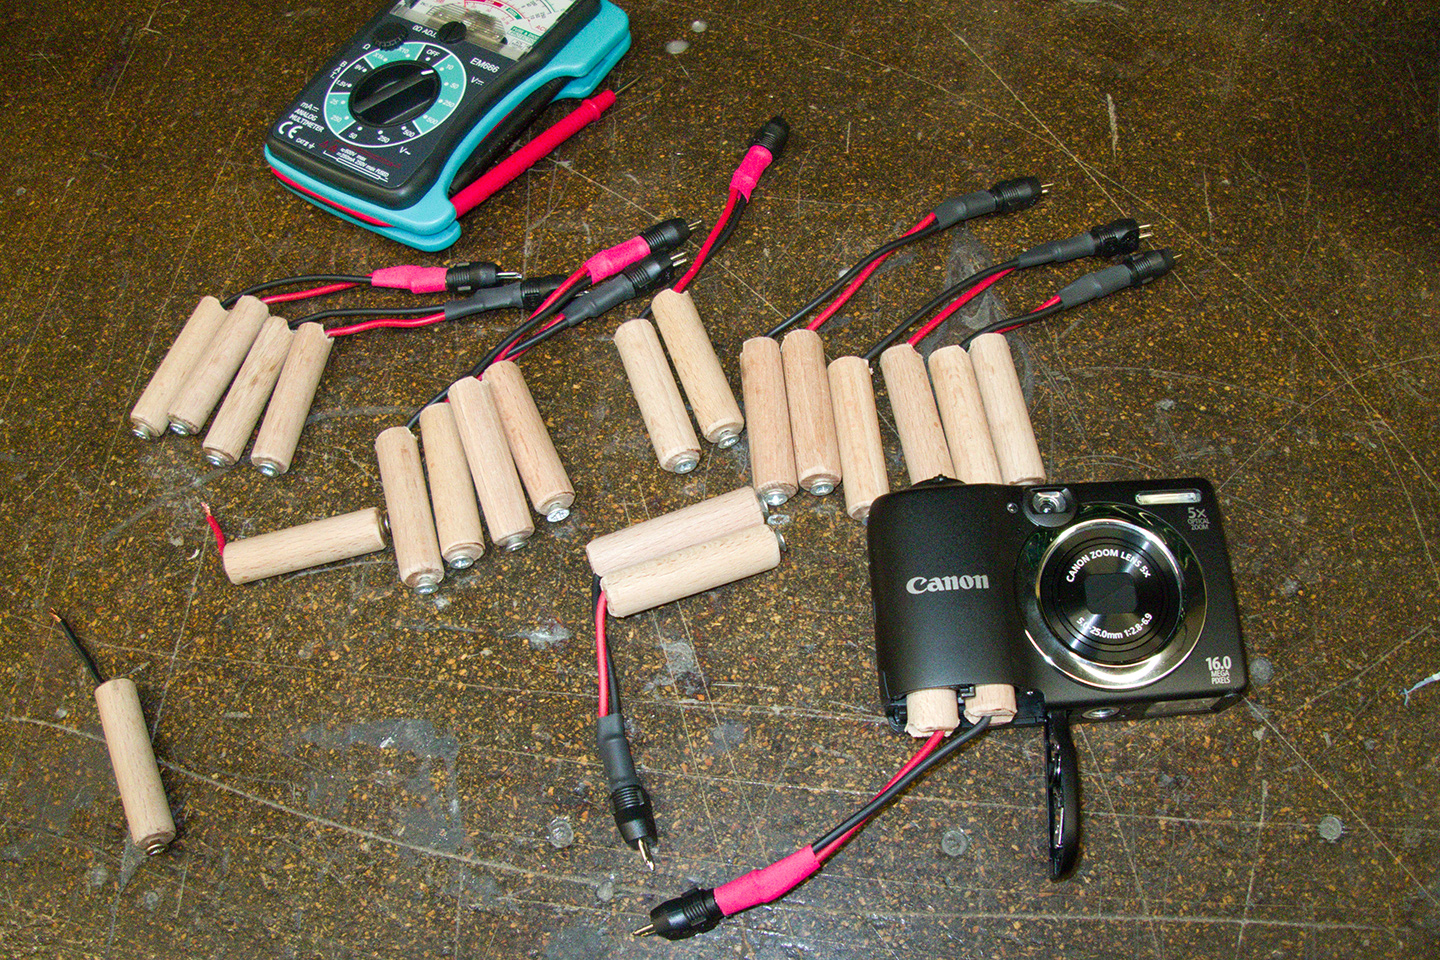 The dummy batteries